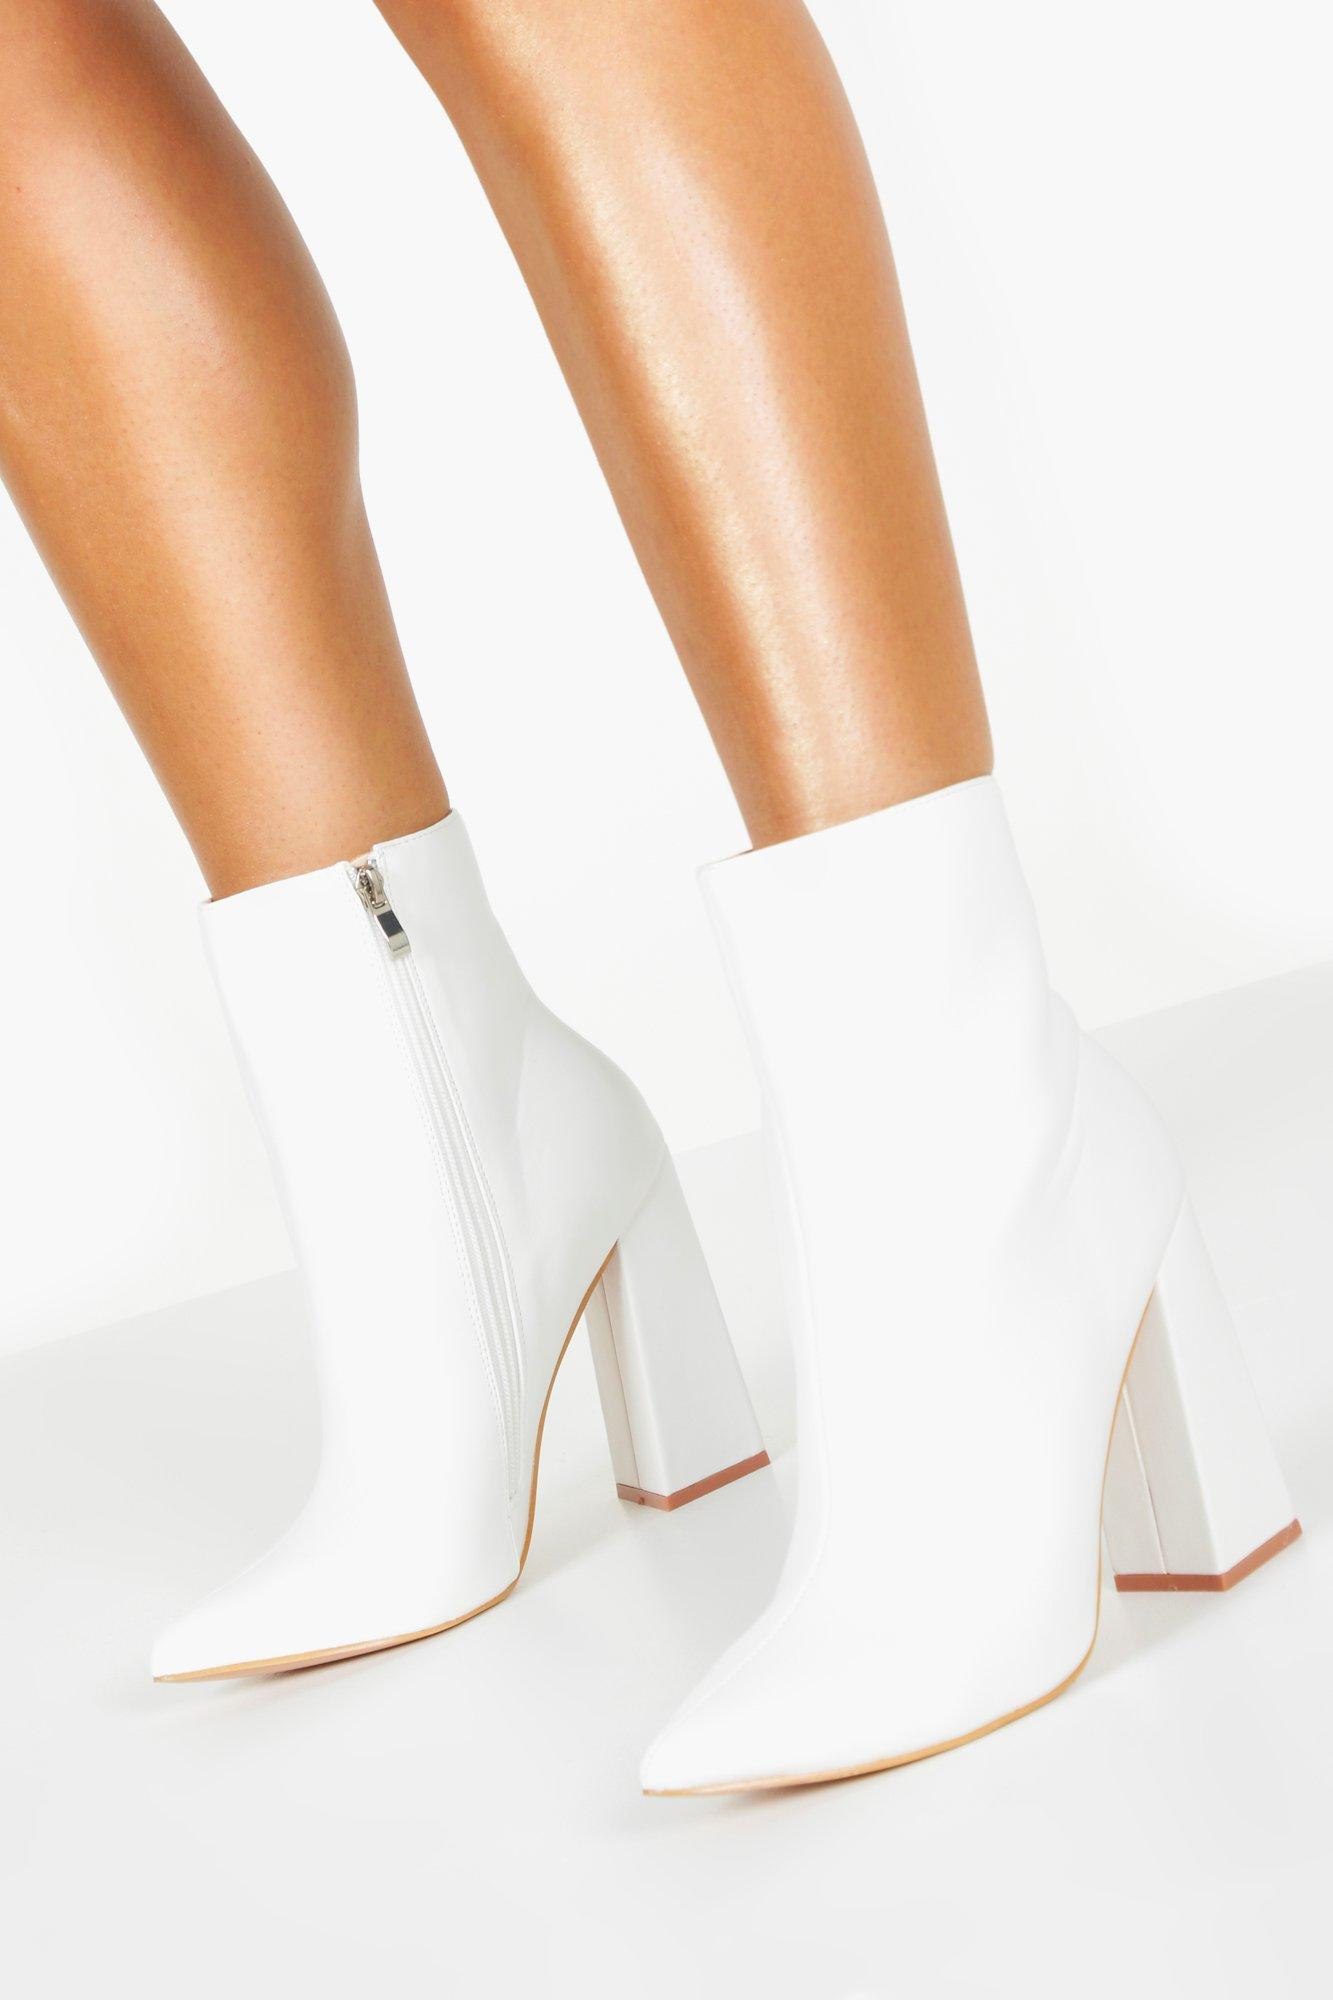 70s Clothes | Hippie Clothes & Outfits Womens Flared Heel Sock Boots - White - 10 $25.60 AT vintagedancer.com